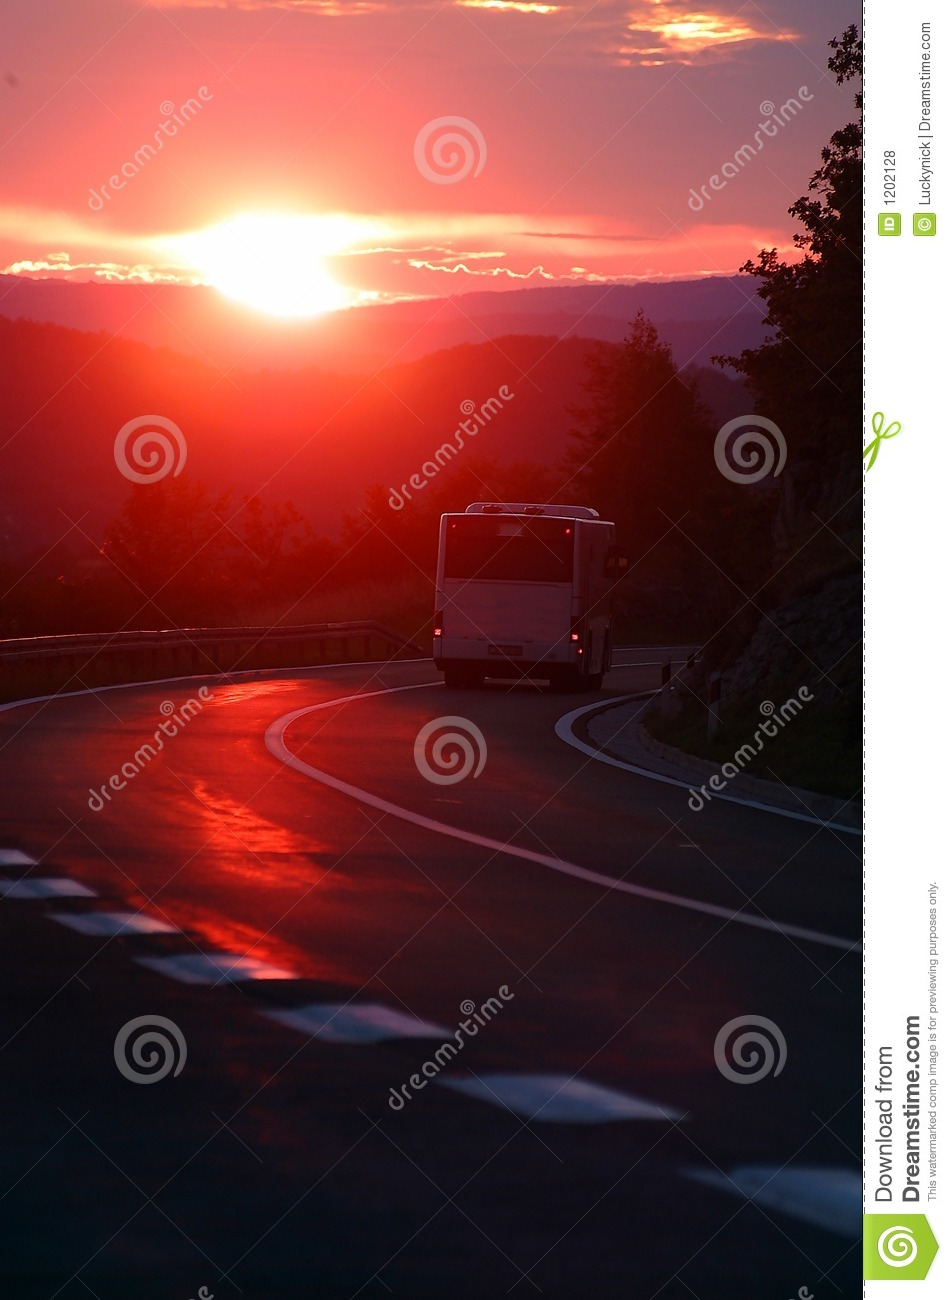 Bus in sunset